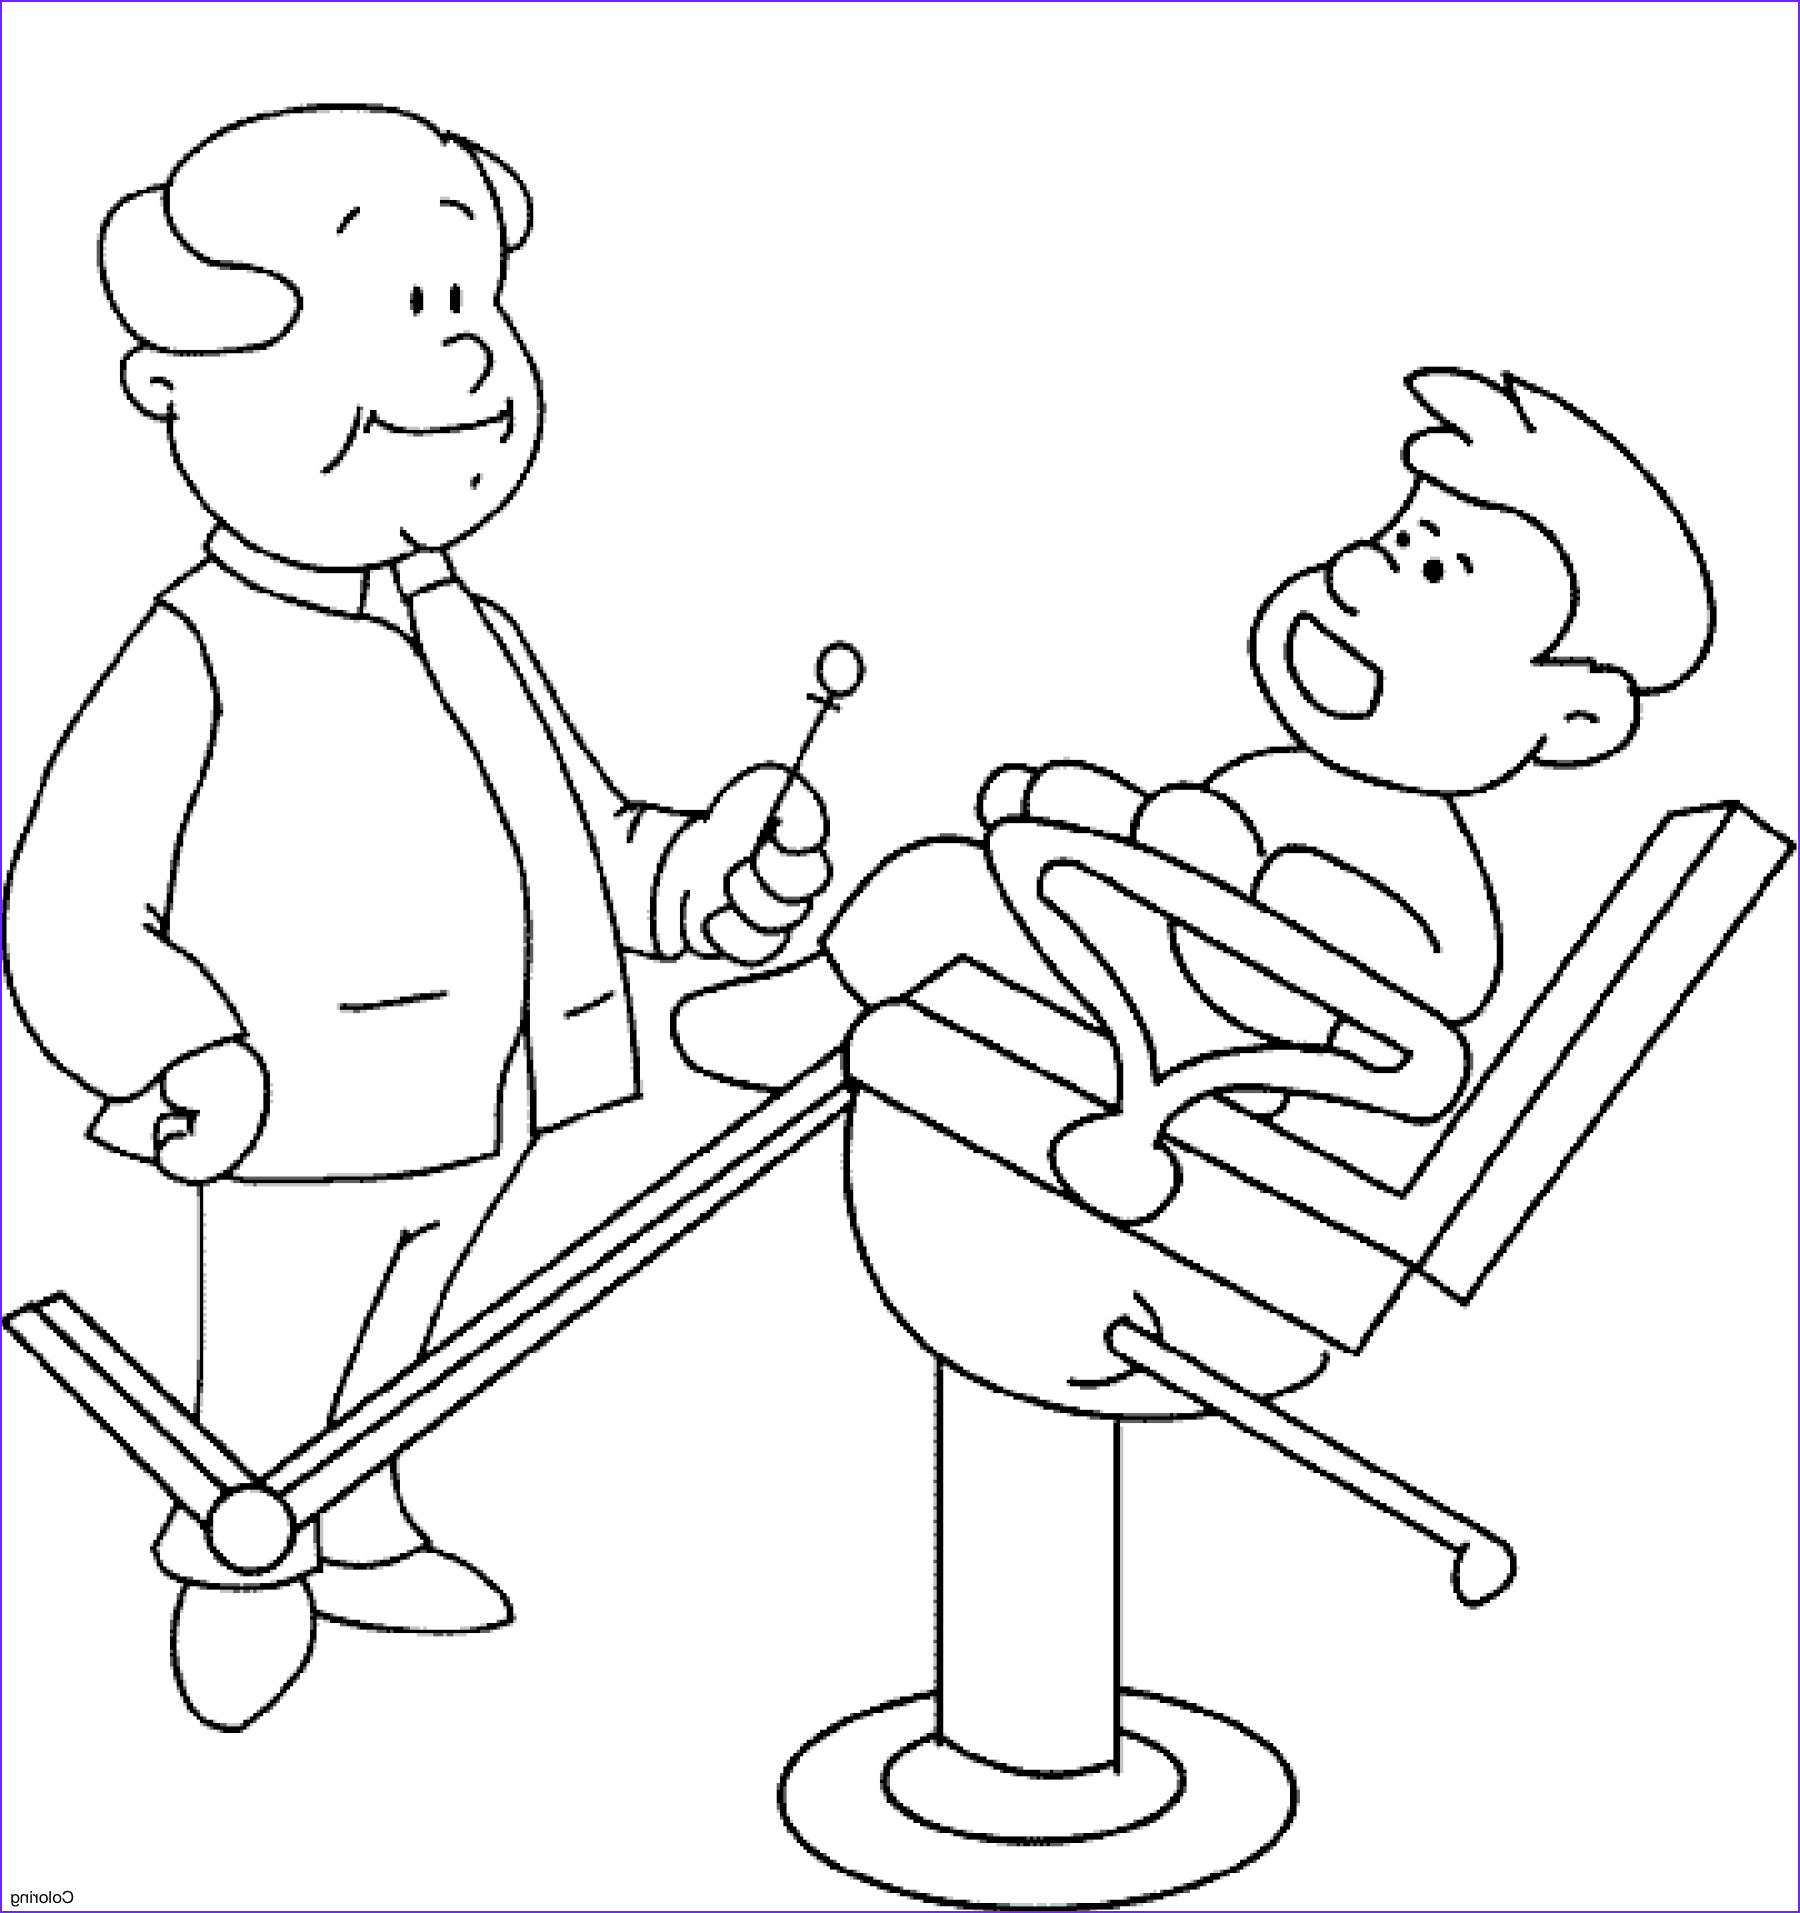 Unique Coloring Pages Beautiful Image Teeth Coloring Pages Gallery